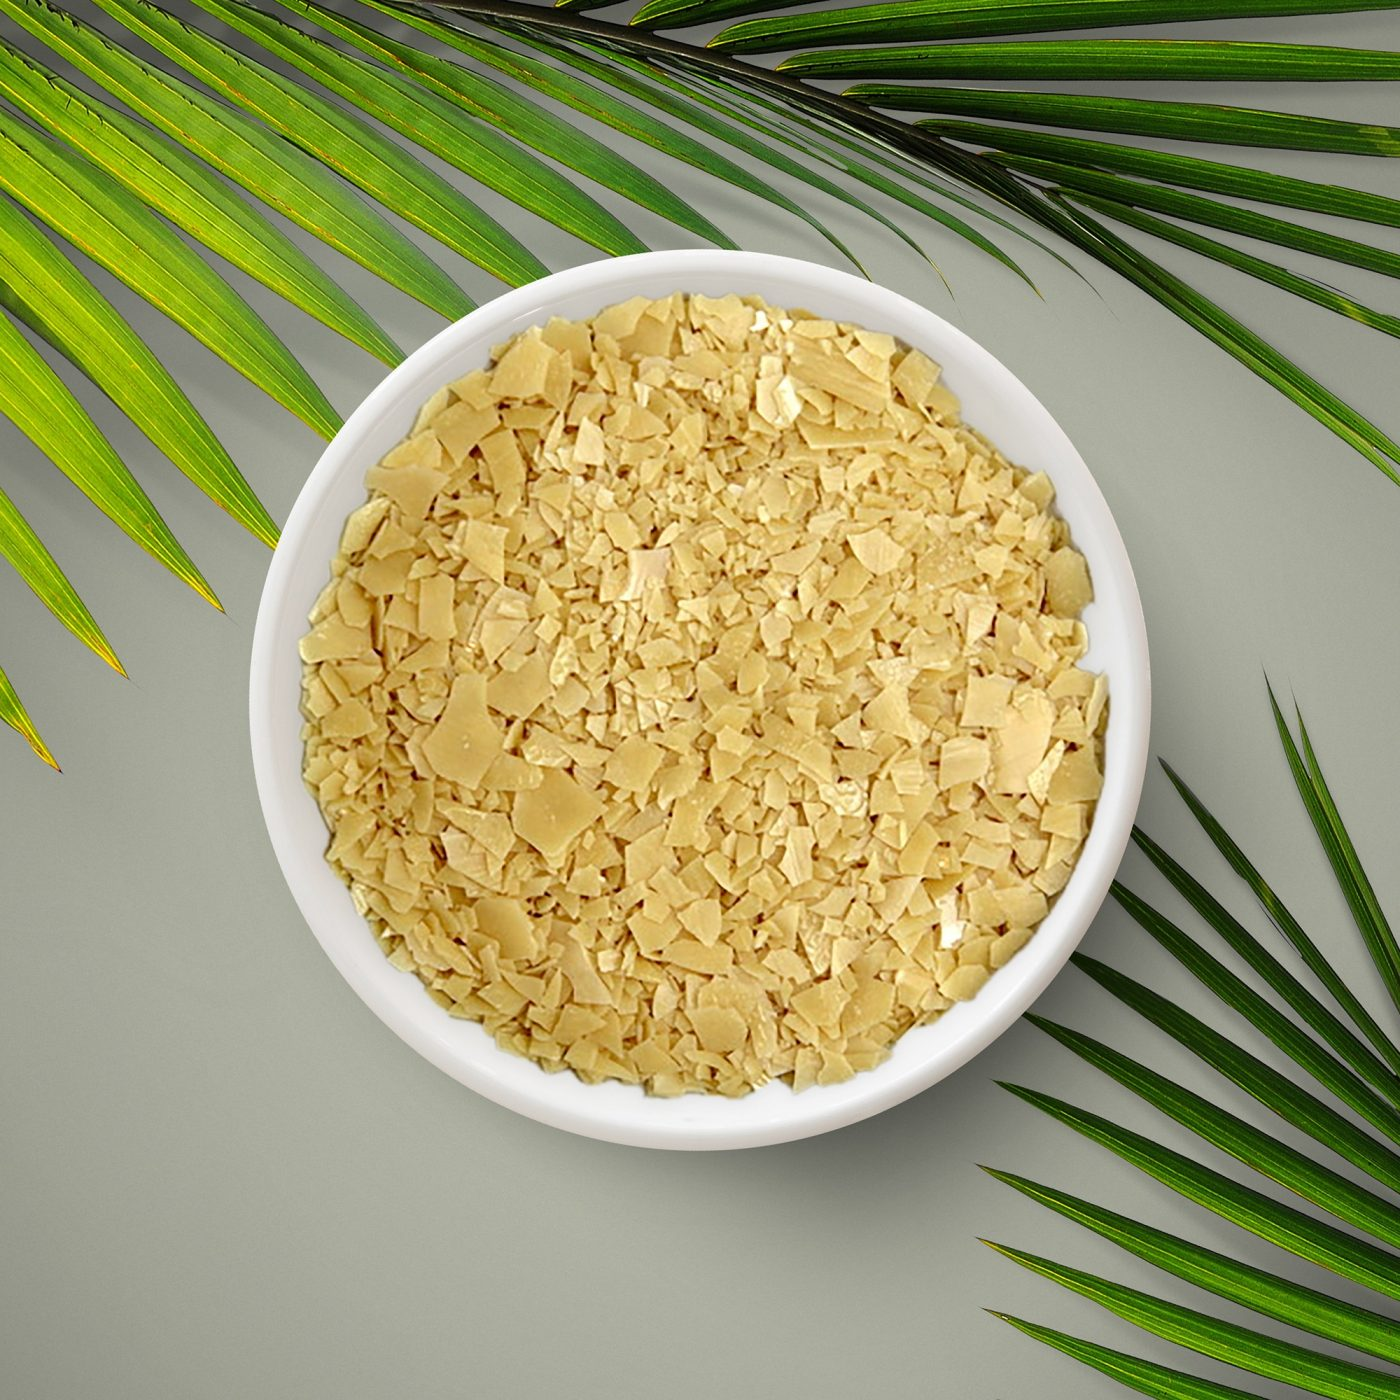 Light, brownish wax flakes. H Foster's carnauba wax is derived from palm leaves.